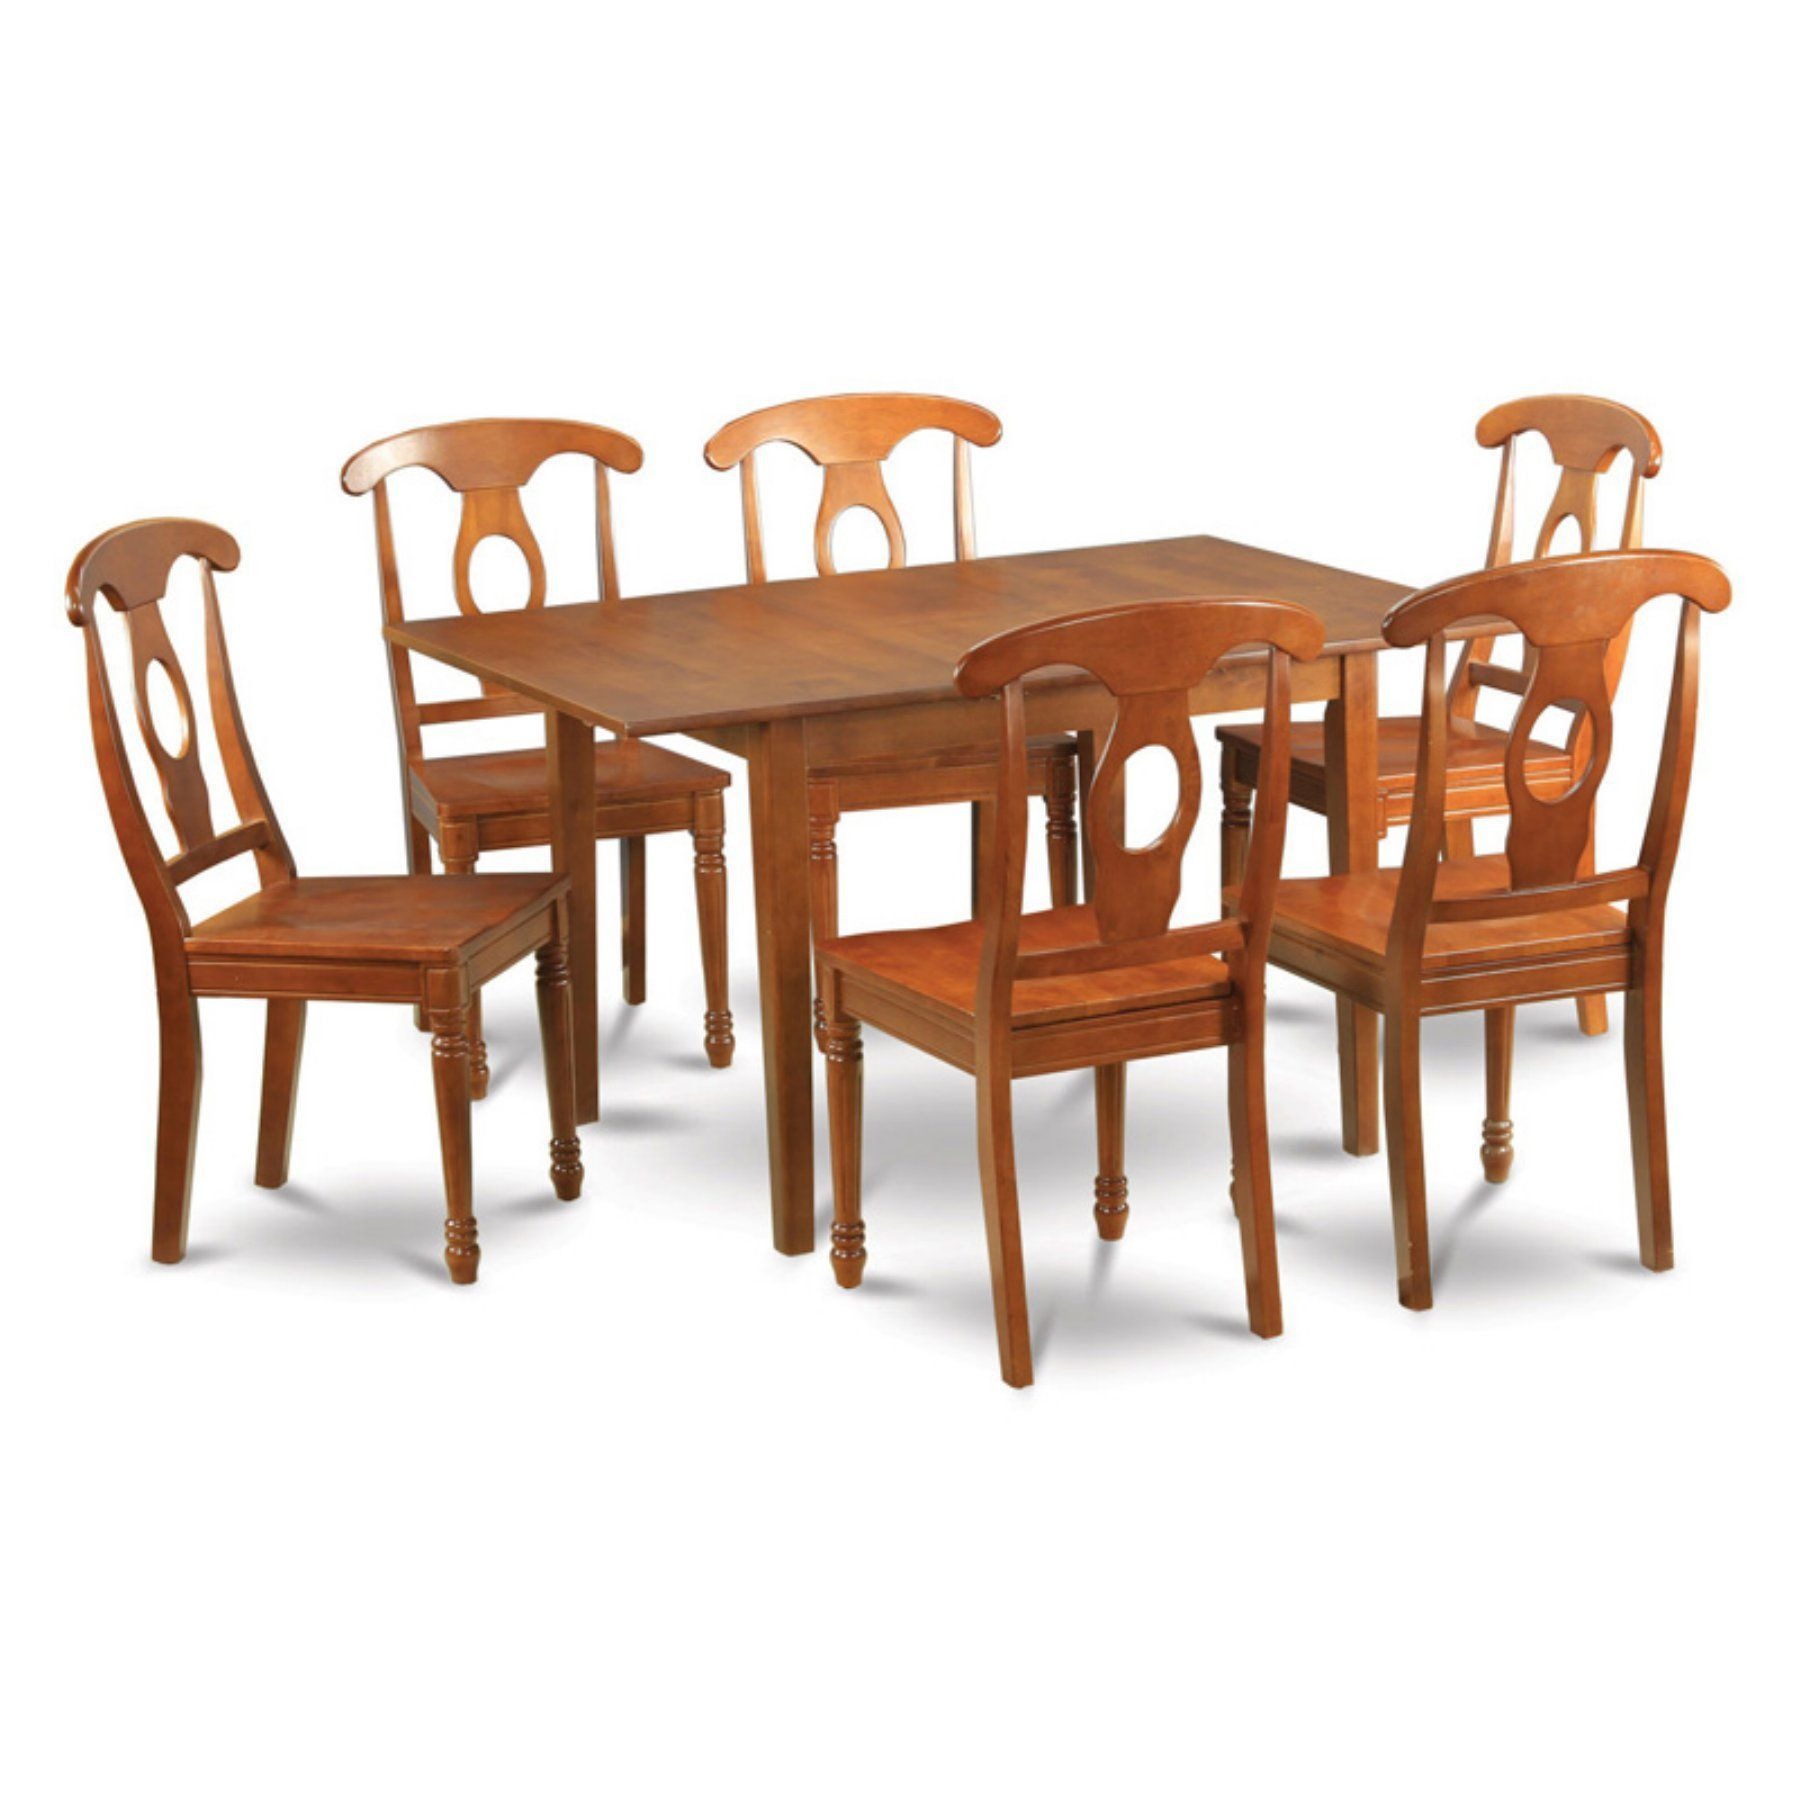 East west furniture milan piece rectangular dining table set with